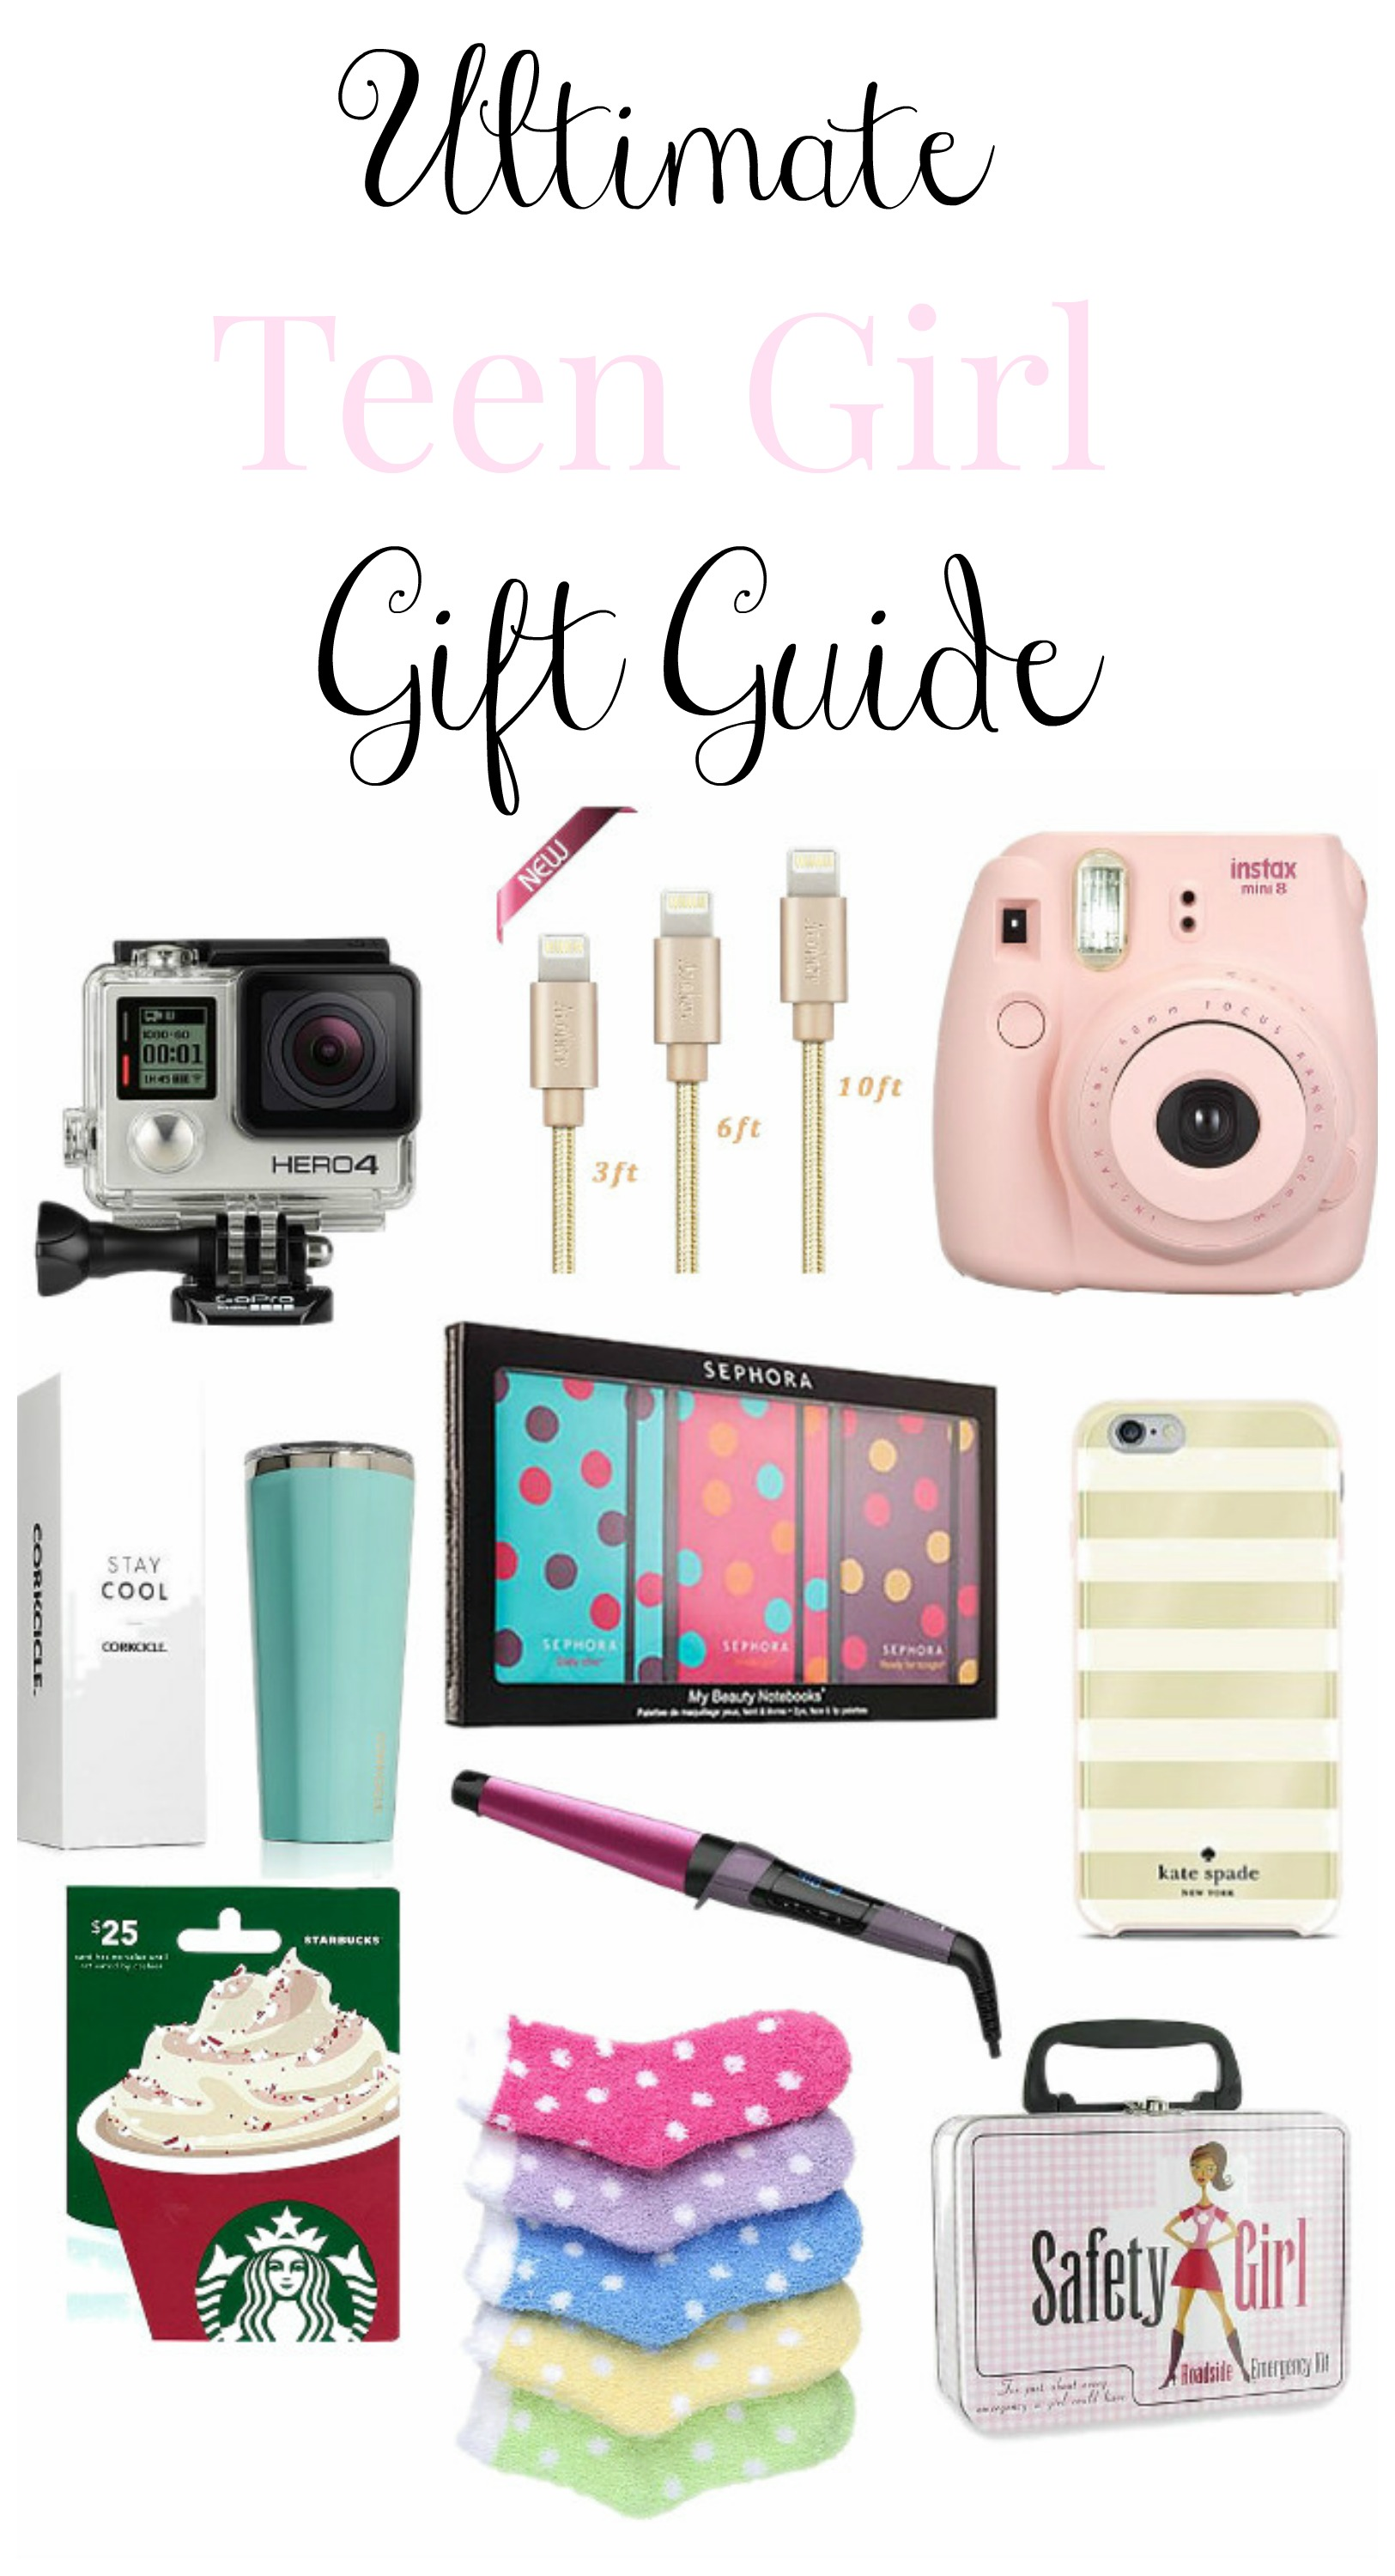 This is the absolute ULTIMATE teen girl gift guide! Lots of great ideas for those  sc 1 st  Re-Fabbed & Teen Girl Christmas Gift Guide - Re-Fabbed